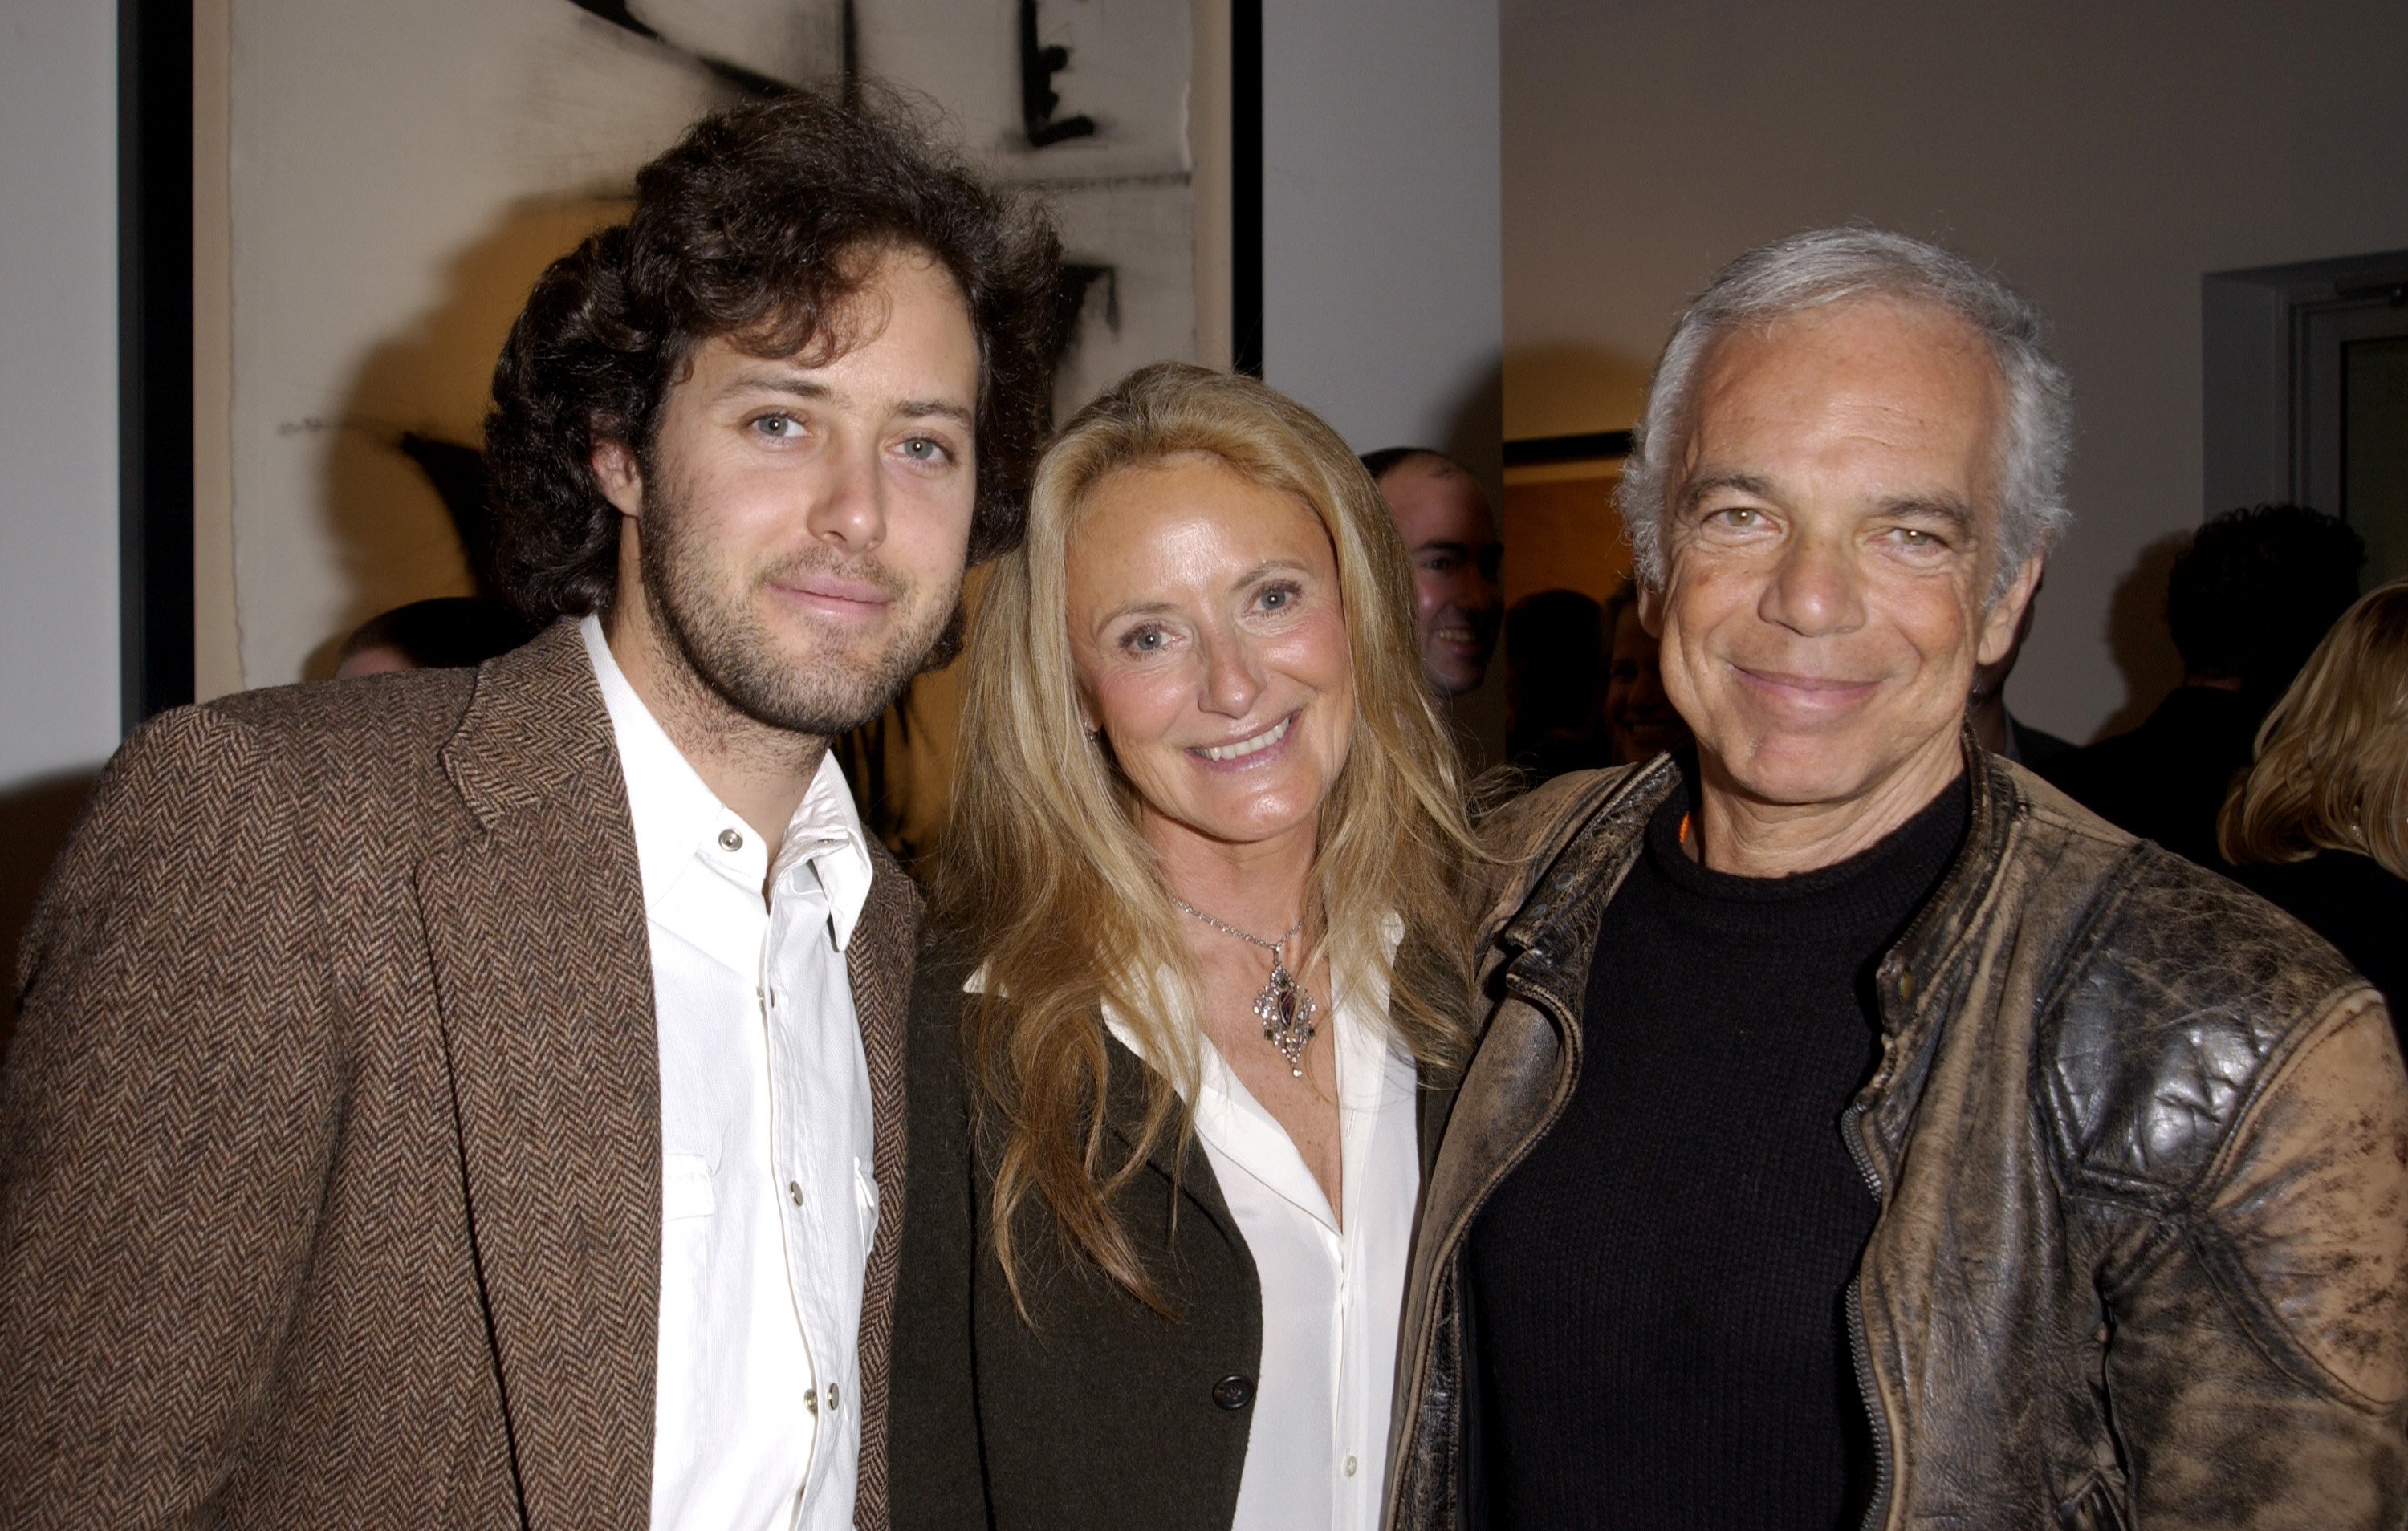 designer ralph lauren frvw  David Lauren with his parents Ricky and Ralph Lauren Photo: J Vespa/